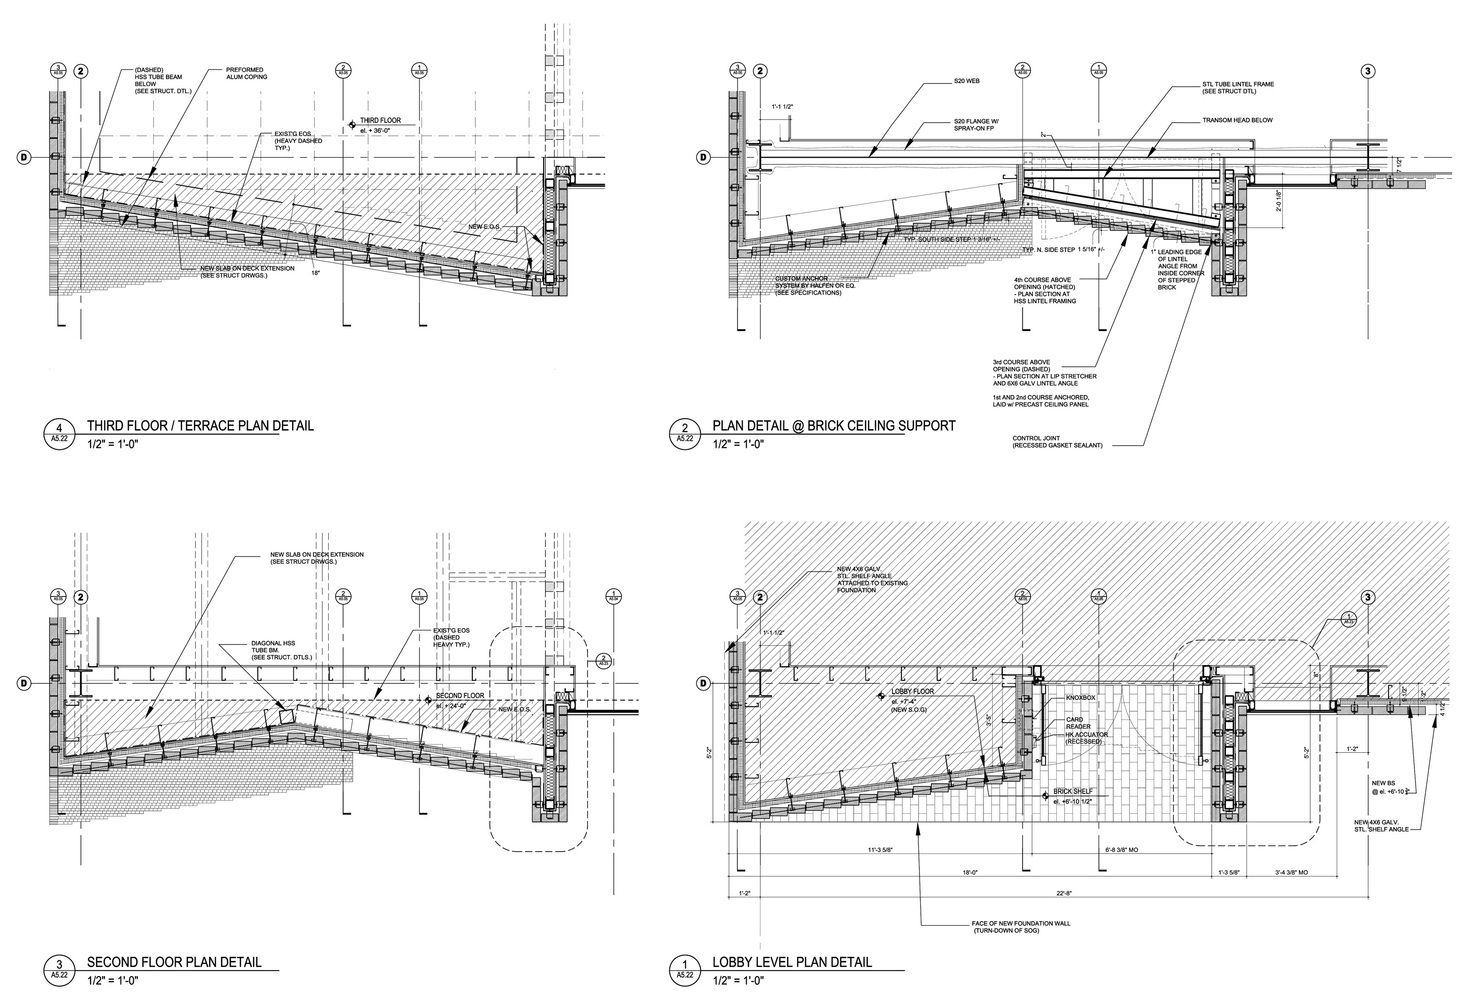 hight resolution of tozzer anthropology building entry brick plan detail